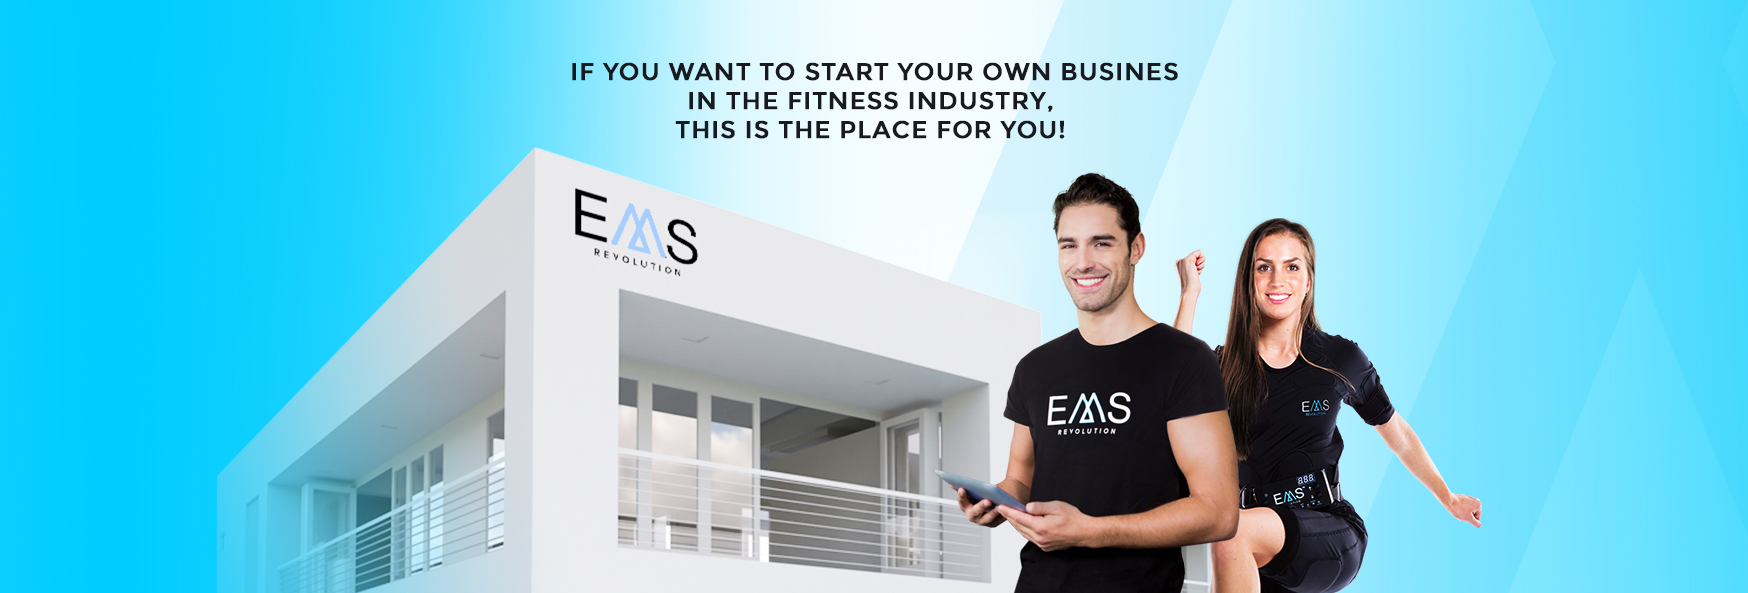 EMS Revolution is the UAE's most affordable gym! Thousands of people use EMS Training across different parts of the world. Start training today itself with ems revolution Open 24/7/365 with Join EMS revolution Today, ems training,ems revolution, ems fitness centre, ems fitness, ems services, ems centre, ems gym abu dhabi, ems training al raha mall, ems fitness al raha mall abudhabi